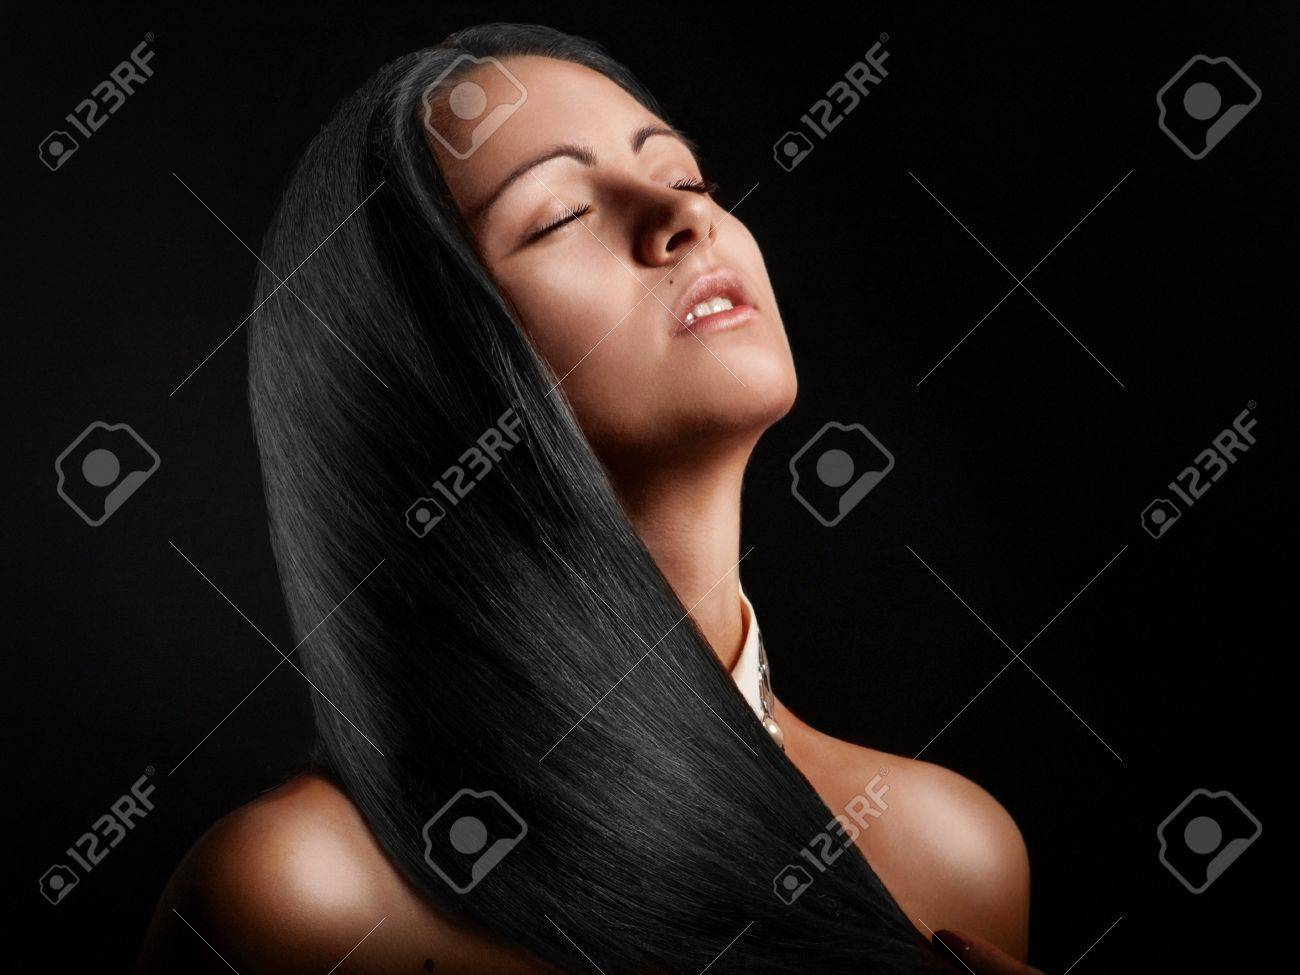 Hot brunette girl with perfect straight hair Stock Photo - 17497275